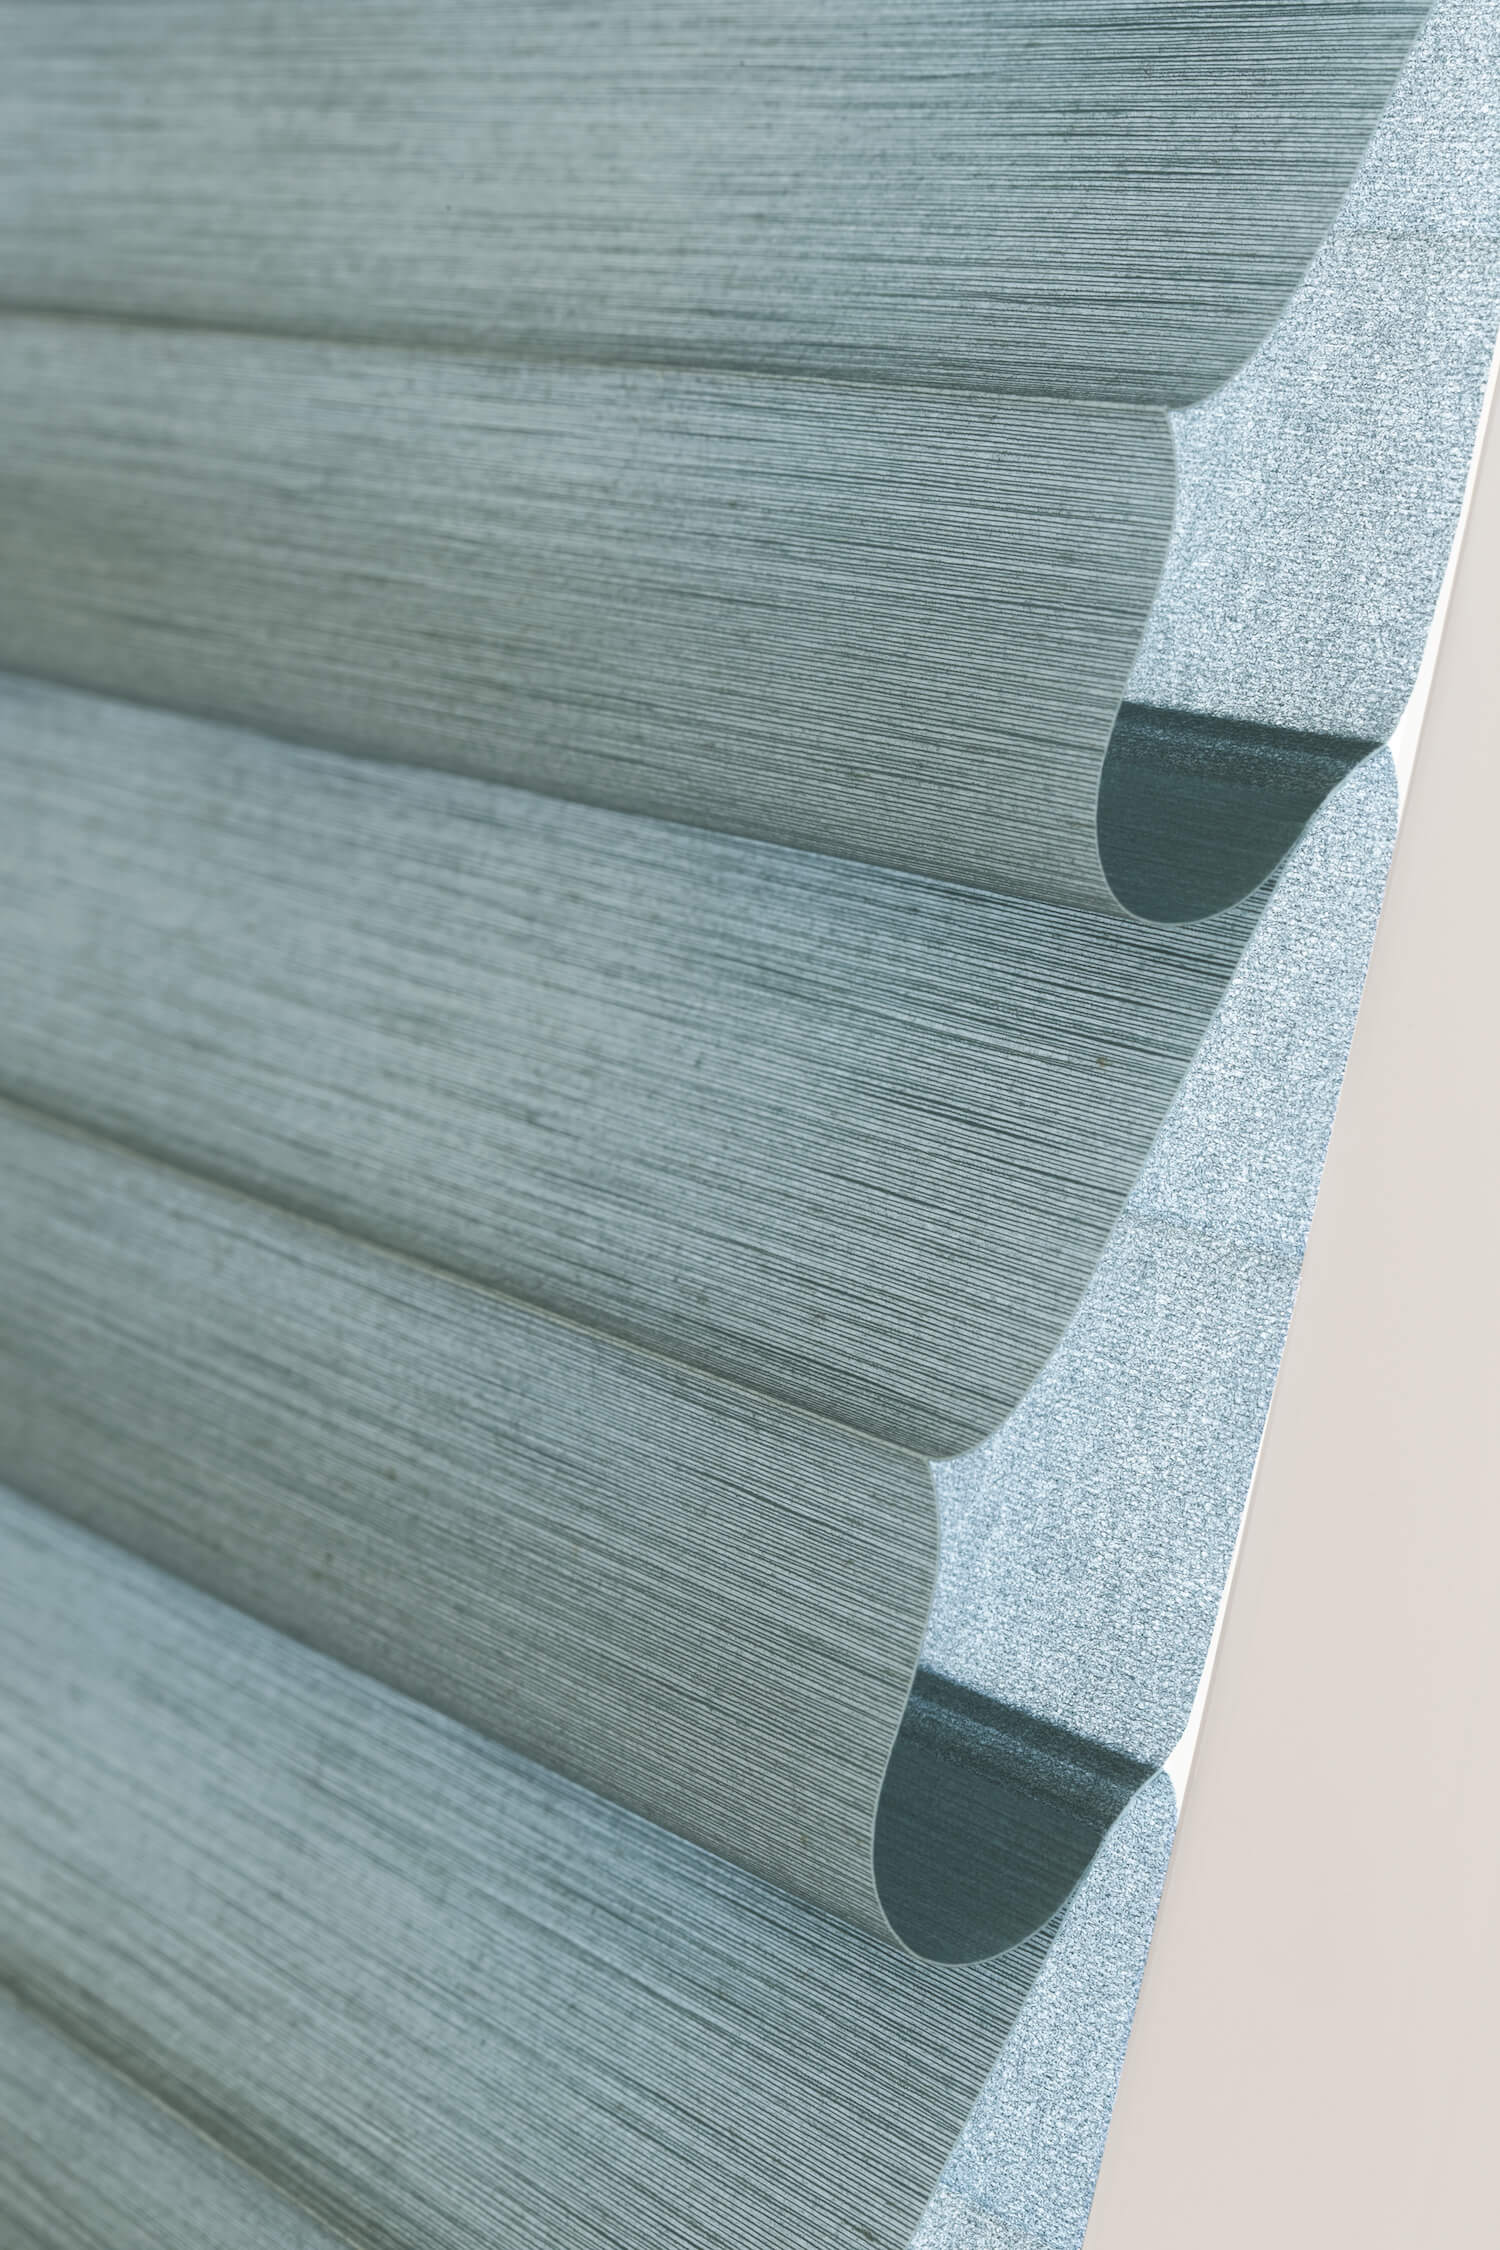 Solera Soft Shade's cellular structure